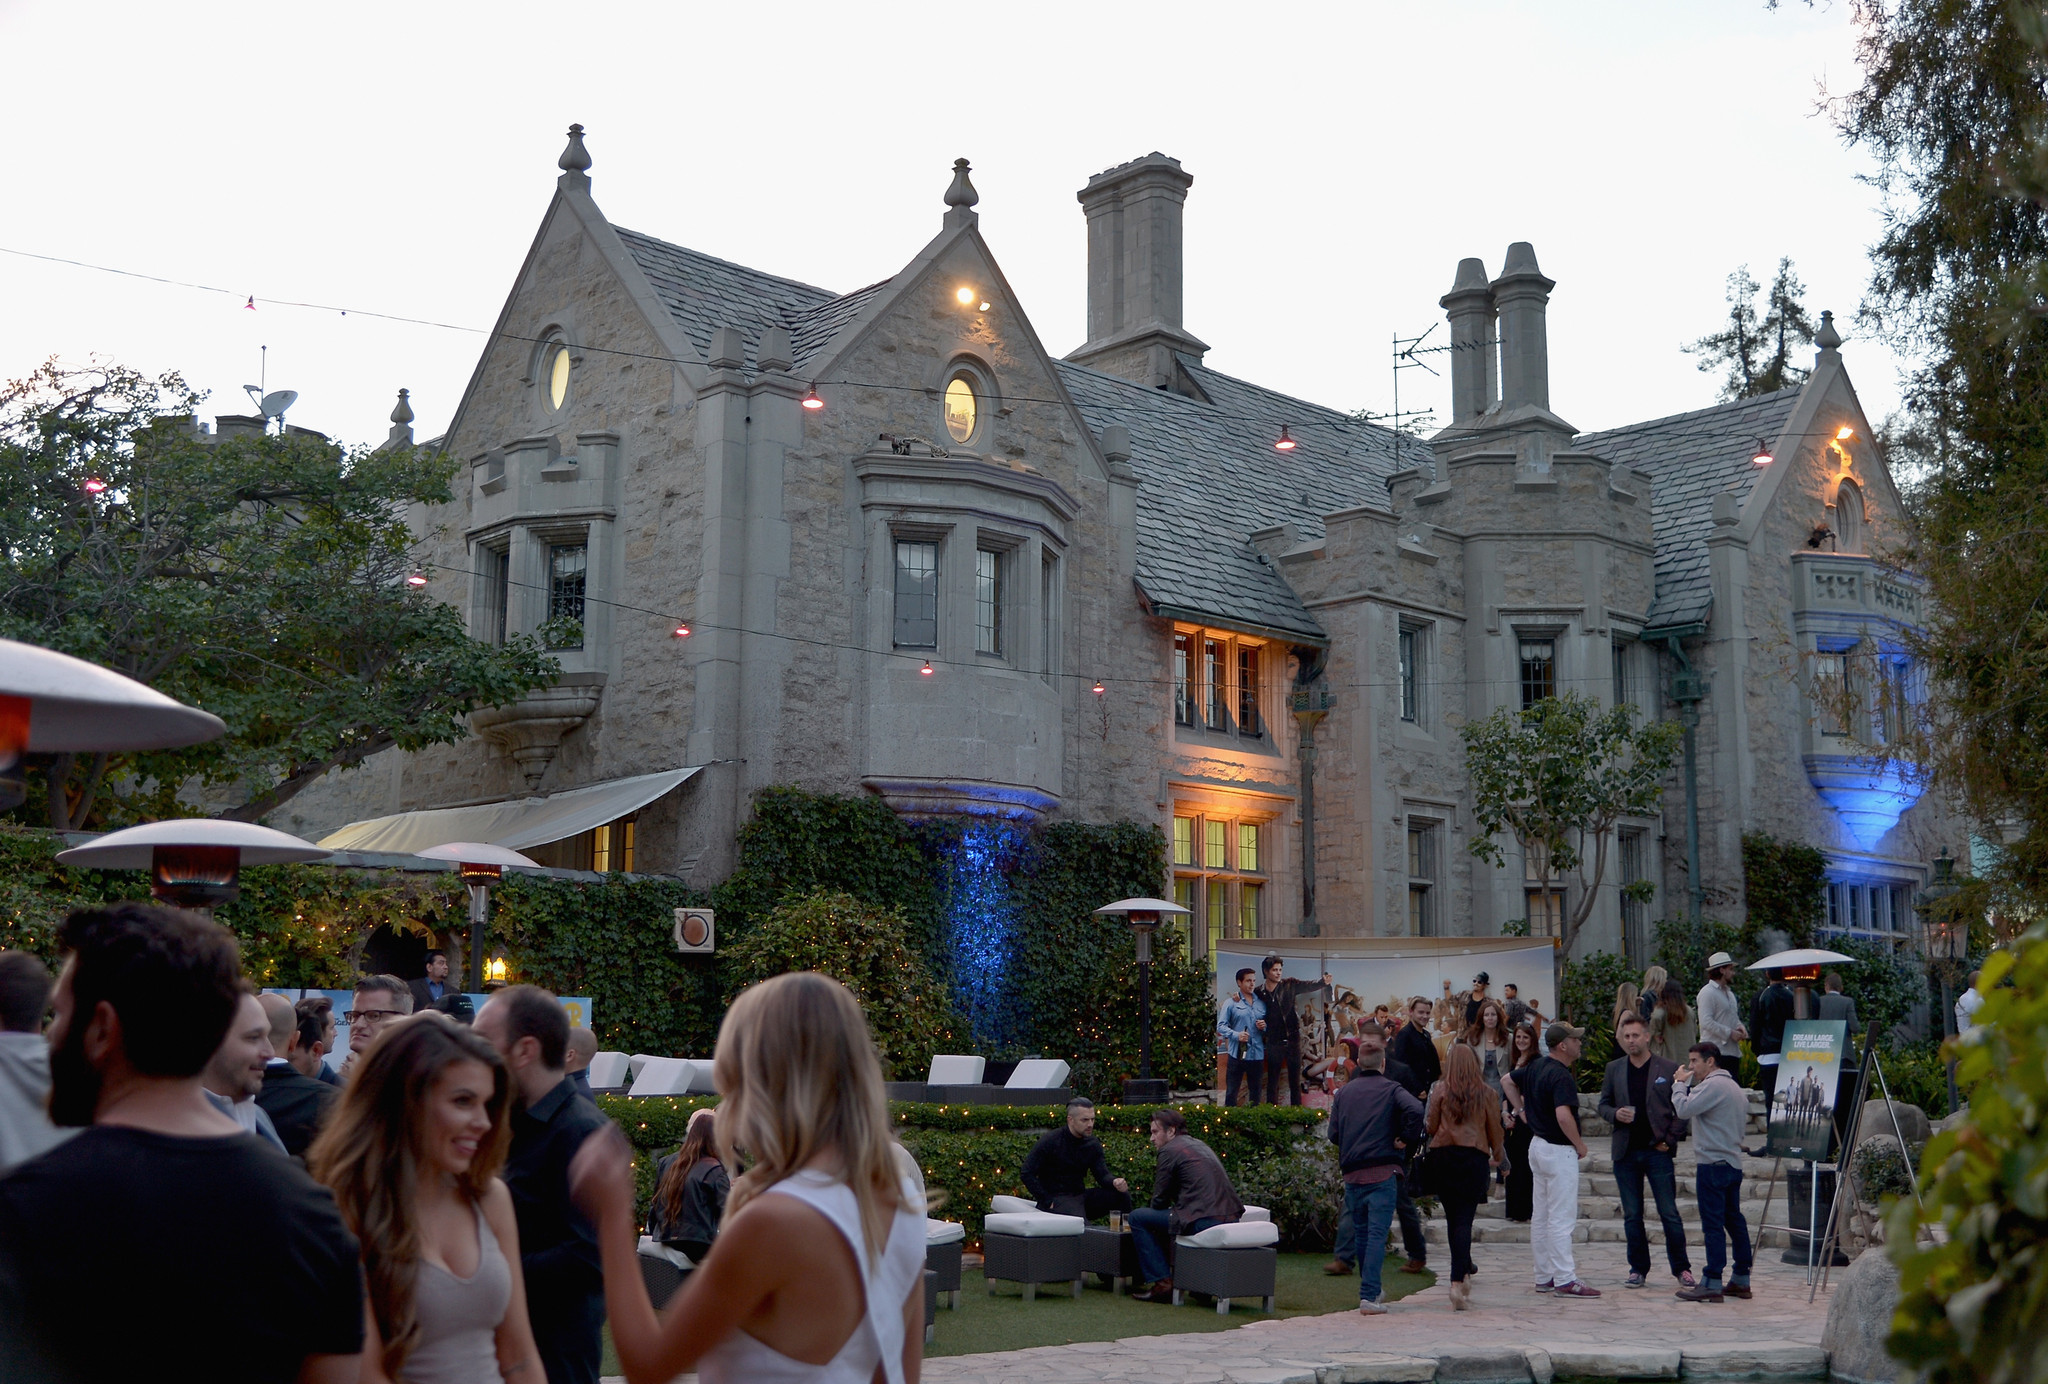 The Playboy Mansion Has Found A Buyer: Playboy Mansion In Los Angeles For Sale But Hugh Hefner